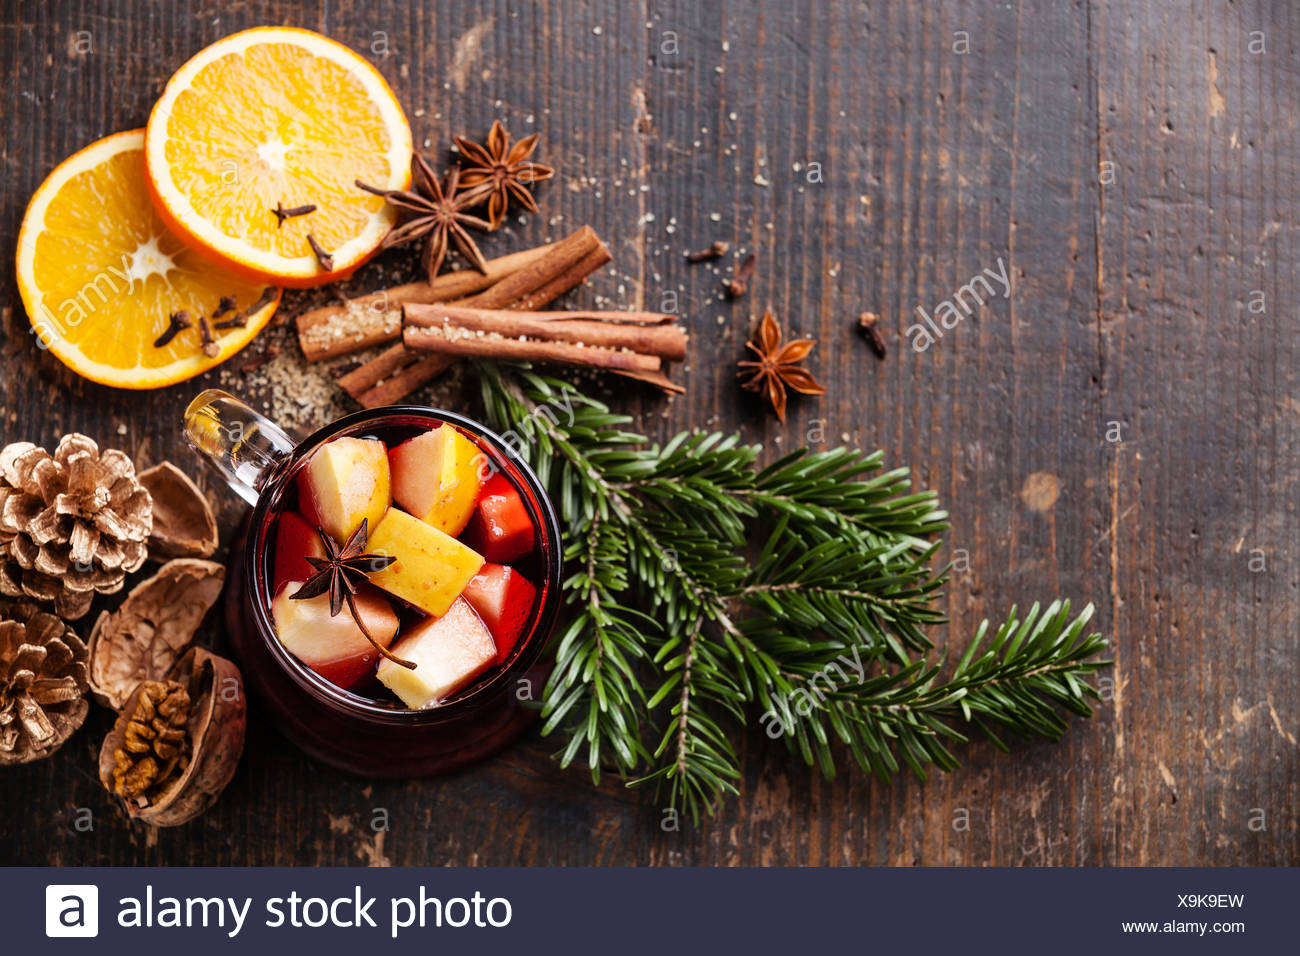 Cup of hot wine with spices on wooden background - Stock Image